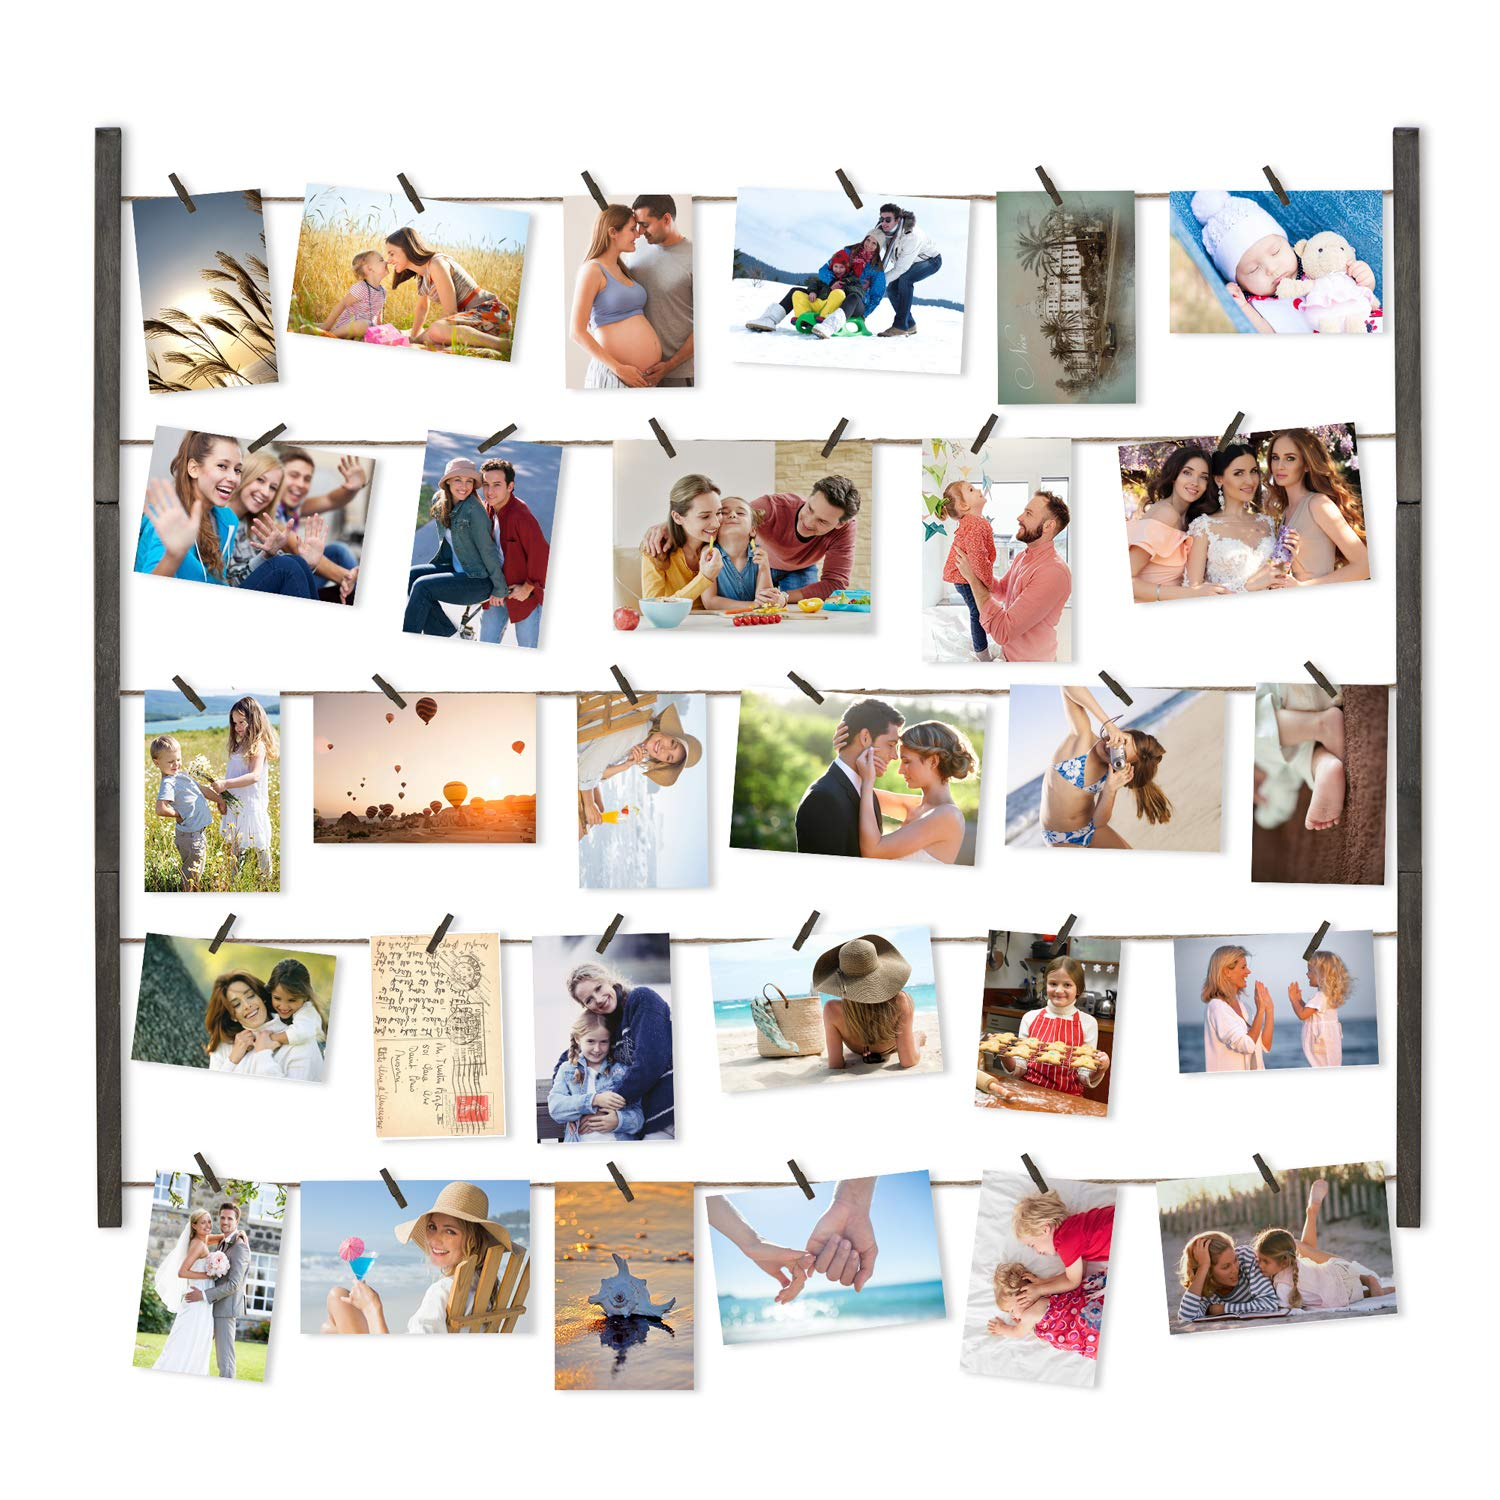 Love-KANKEI Wood Picture Photo Frame for Wall Decor 26×29 inch with 30 Clips and Ajustable Twines Collage Artworks Prints Multi Pictures Organizer and Hanging Display Frames Weathered Grey by Love-KANKEI